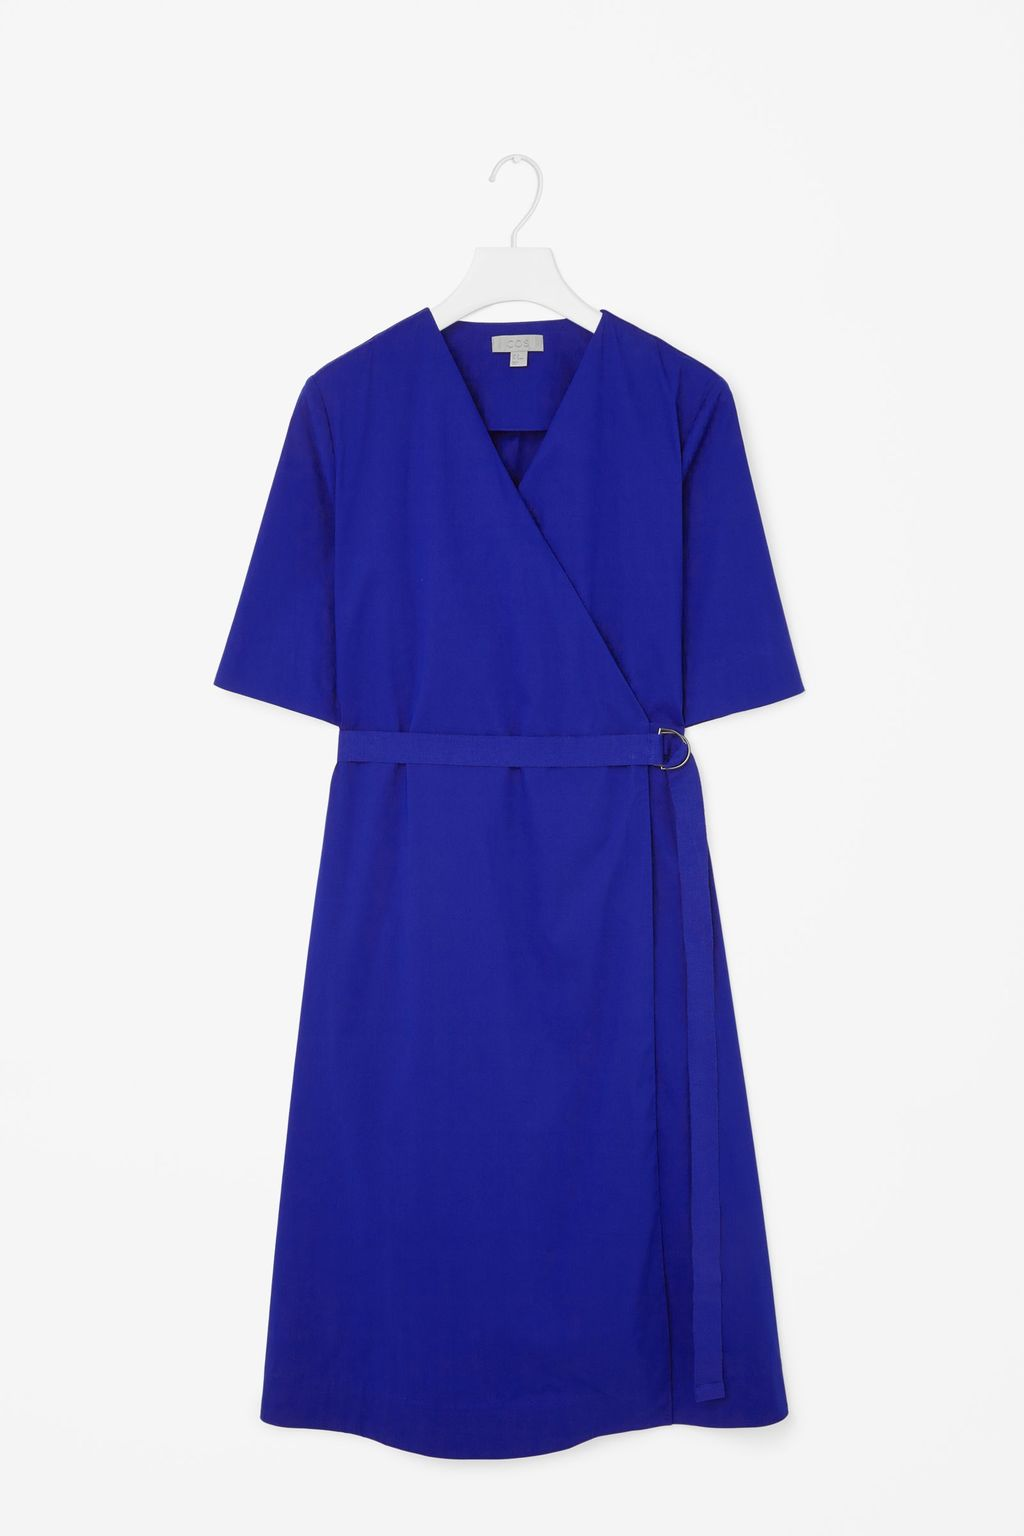 Wrap Over Cotton Dress - style: faux wrap/wrap; neckline: v-neck; fit: fitted at waist; pattern: plain; waist detail: belted waist/tie at waist/drawstring; predominant colour: royal blue; occasions: casual, evening, creative work; length: just above the knee; fibres: cotton - 100%; sleeve length: short sleeve; sleeve style: standard; texture group: crepes; pattern type: fabric; season: s/s 2015